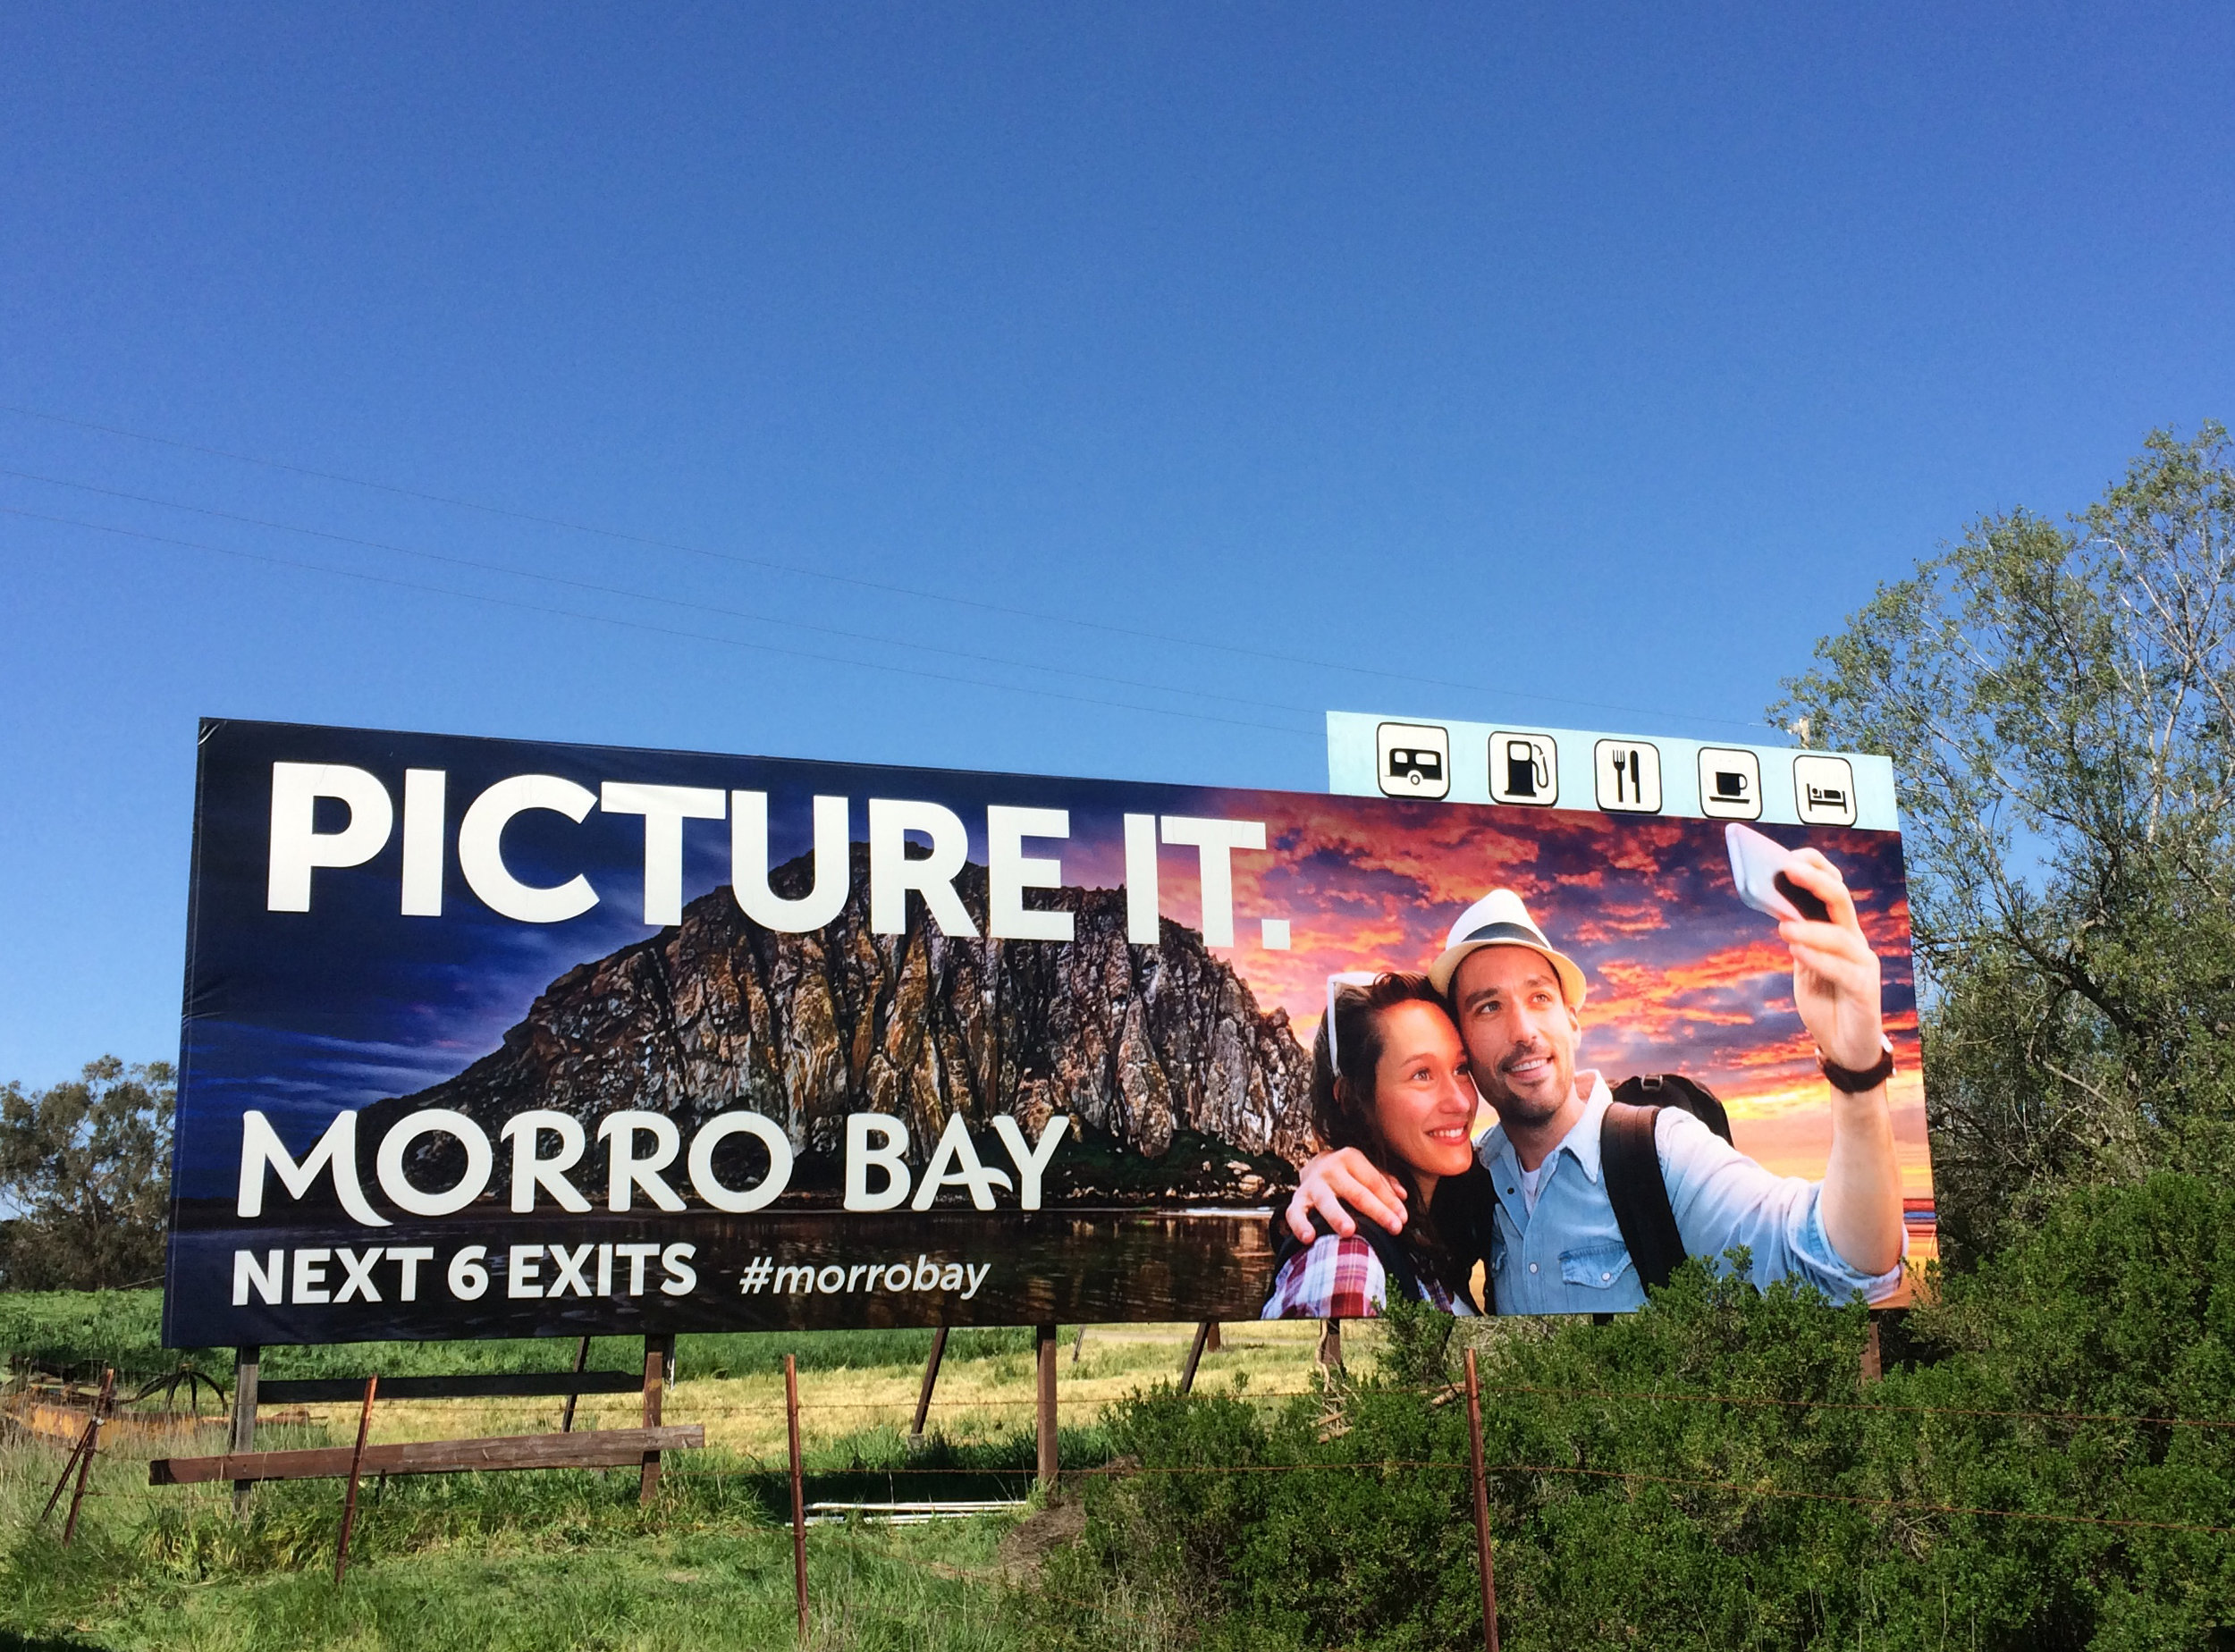 Morro Bay Billboard.JPG